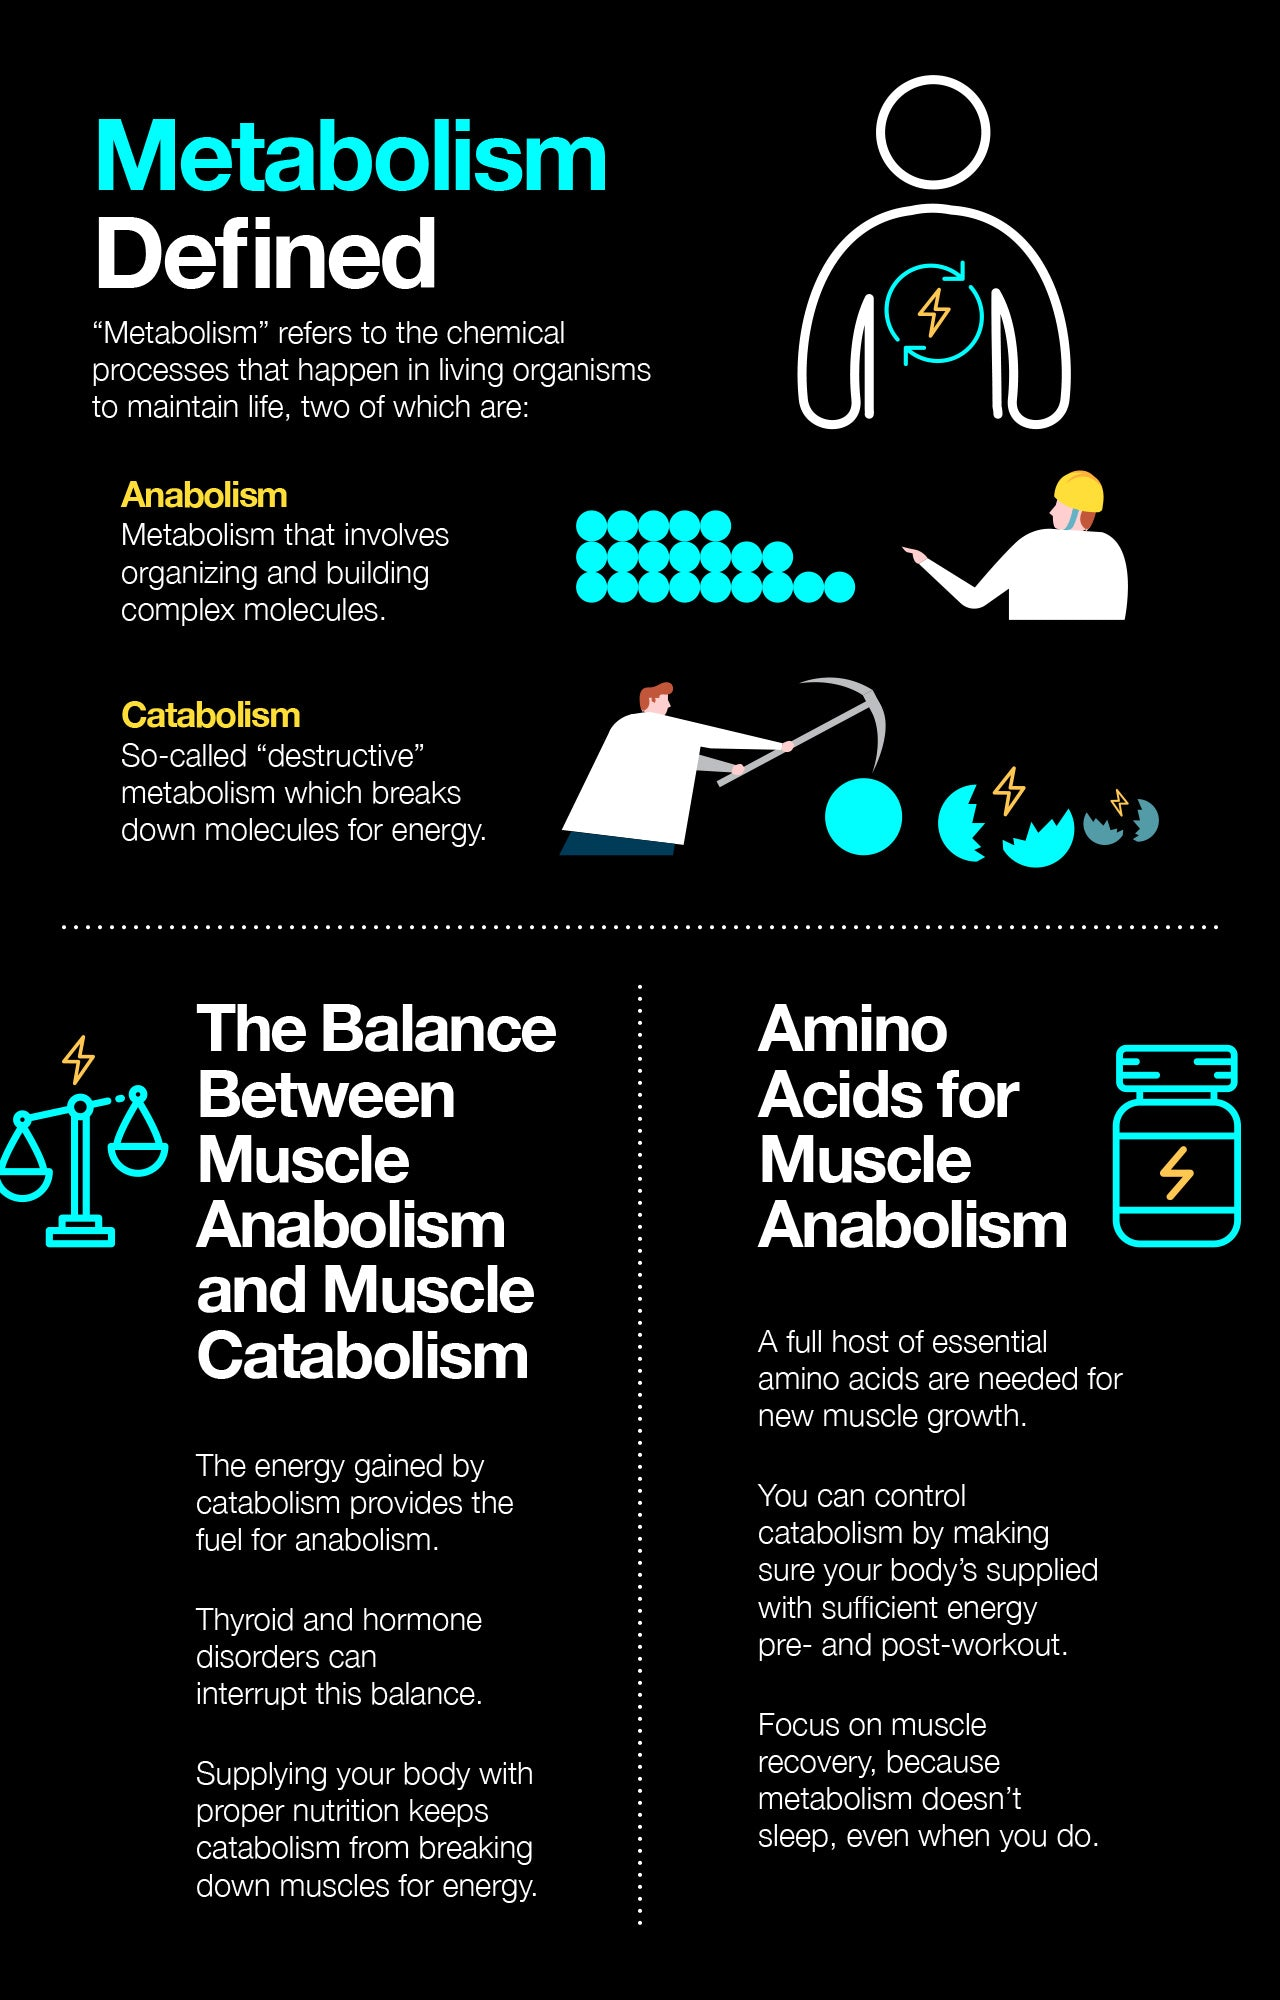 Muscle anabolism vs. muscle catabolism in bodybuilding.